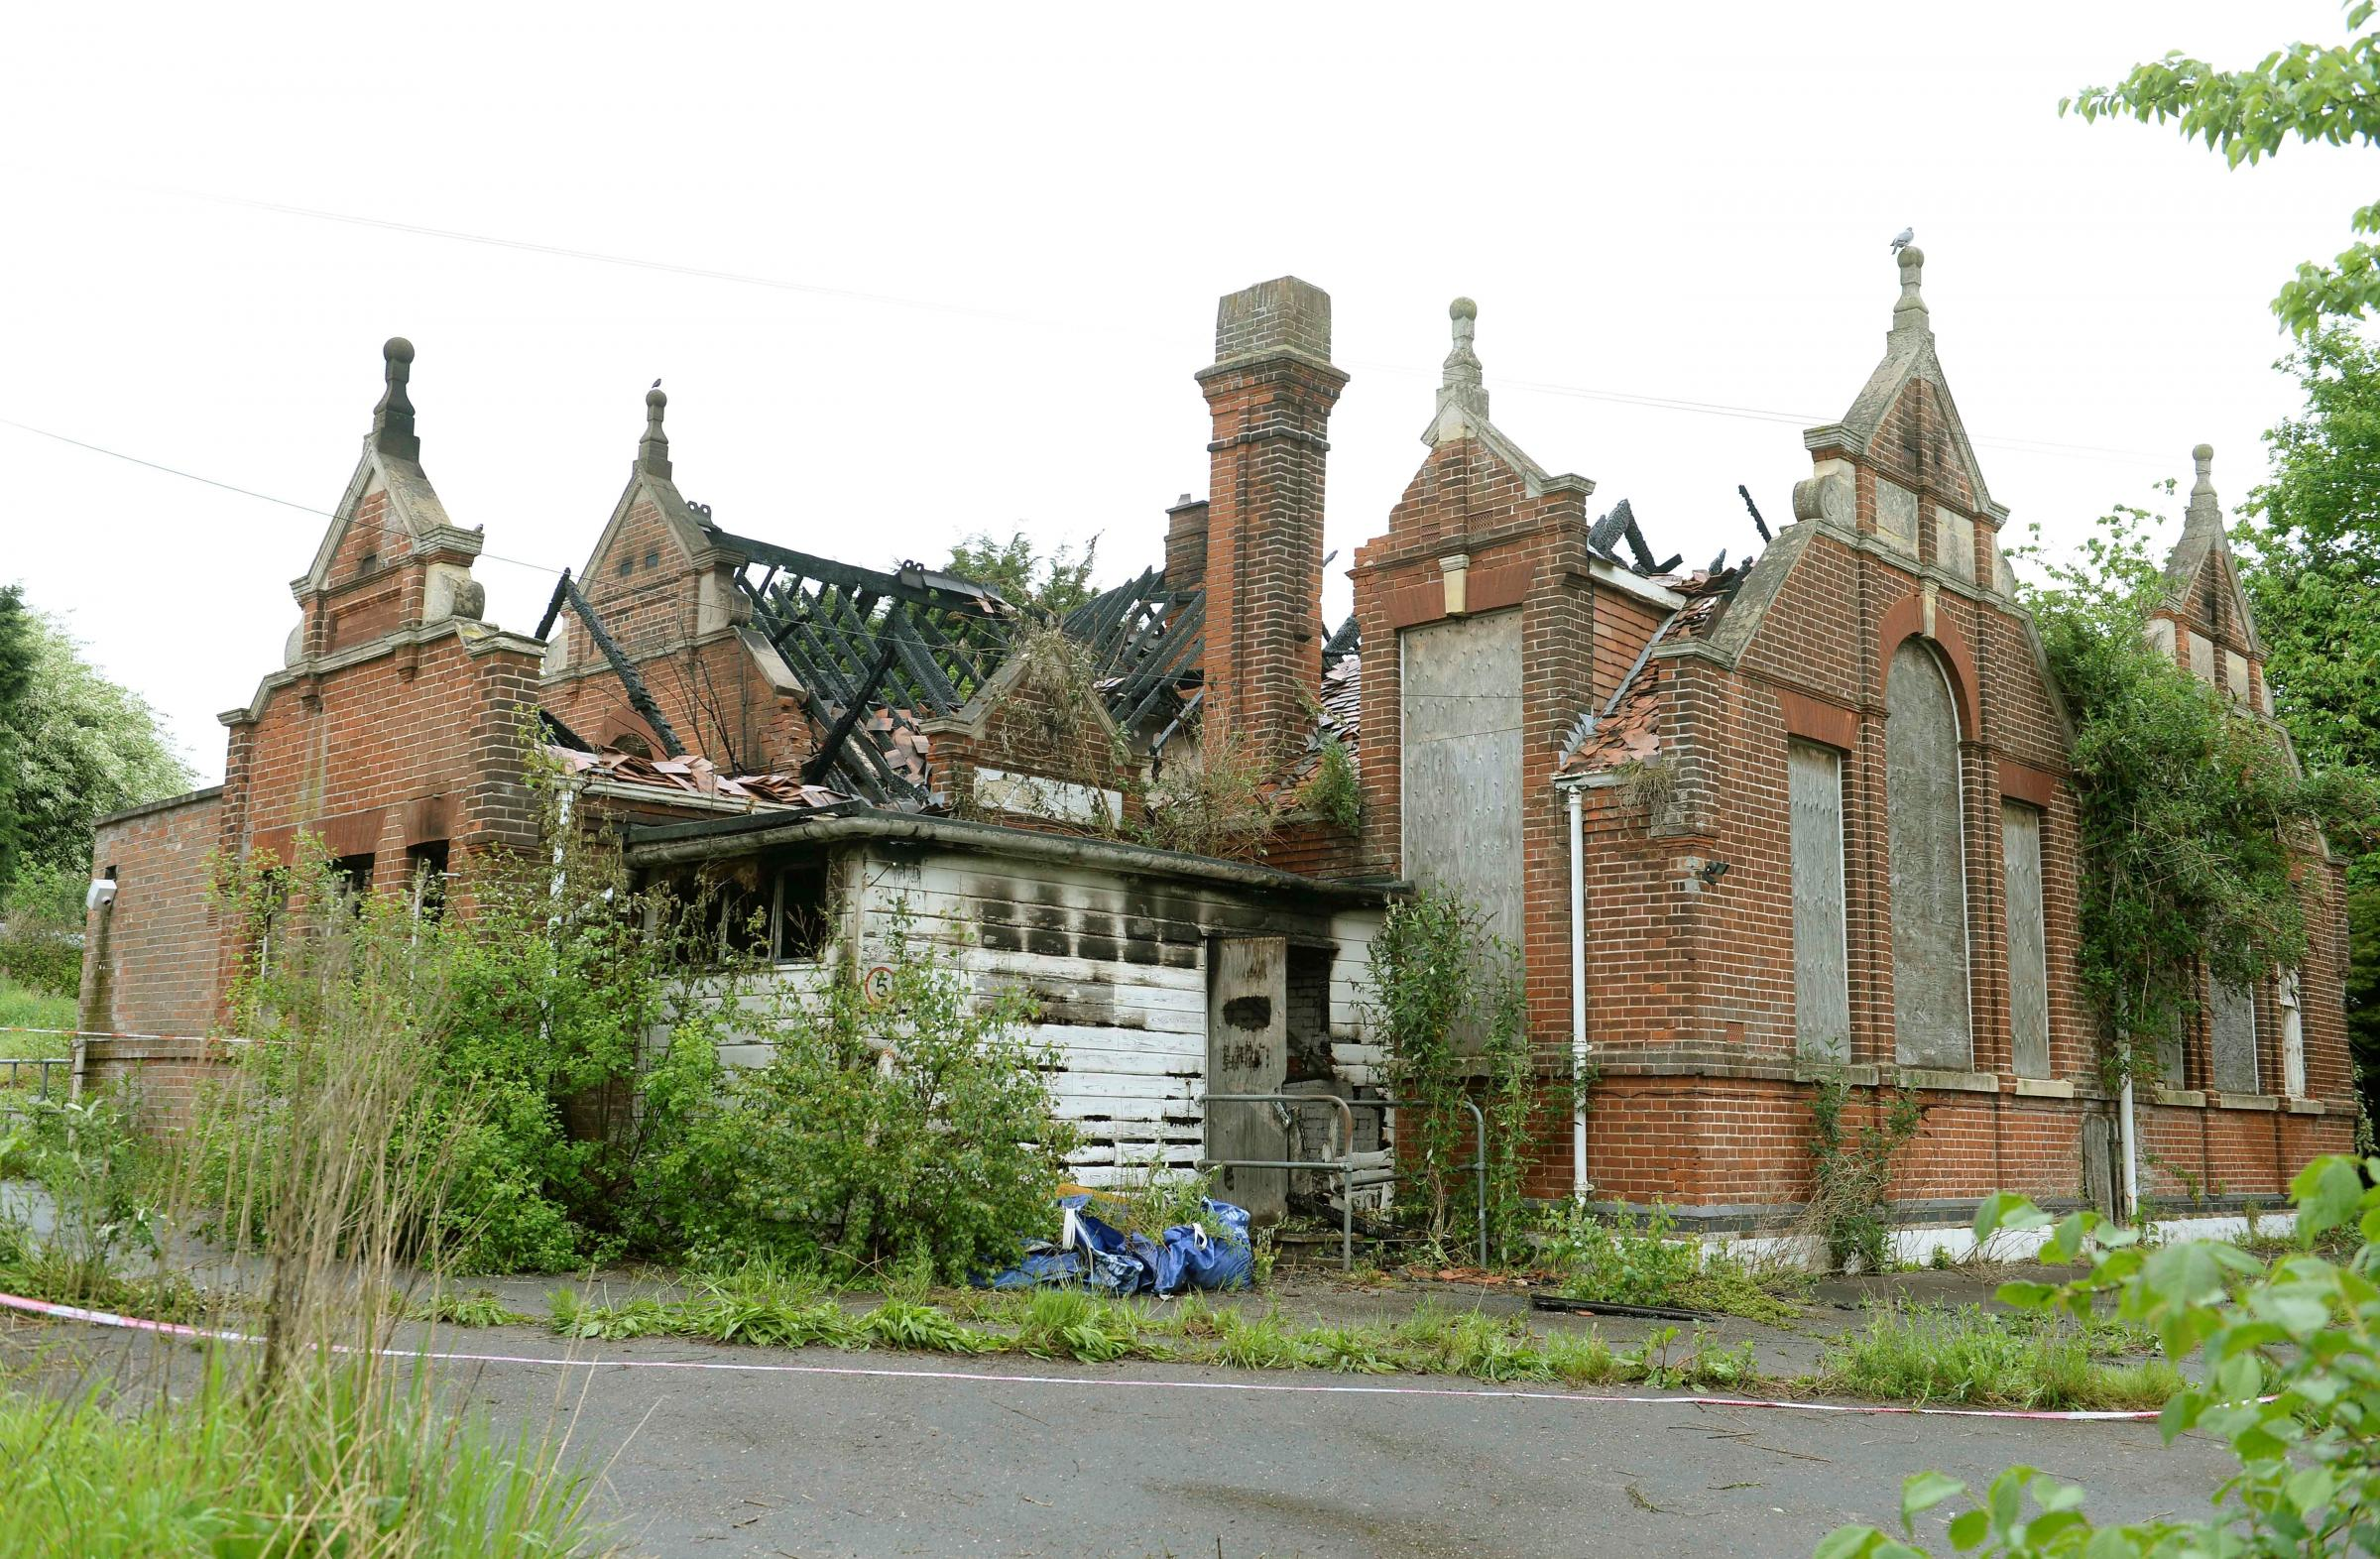 The remains of the old Ramsey County Primary in Wix Road, Ramsey, after the fire in 2016